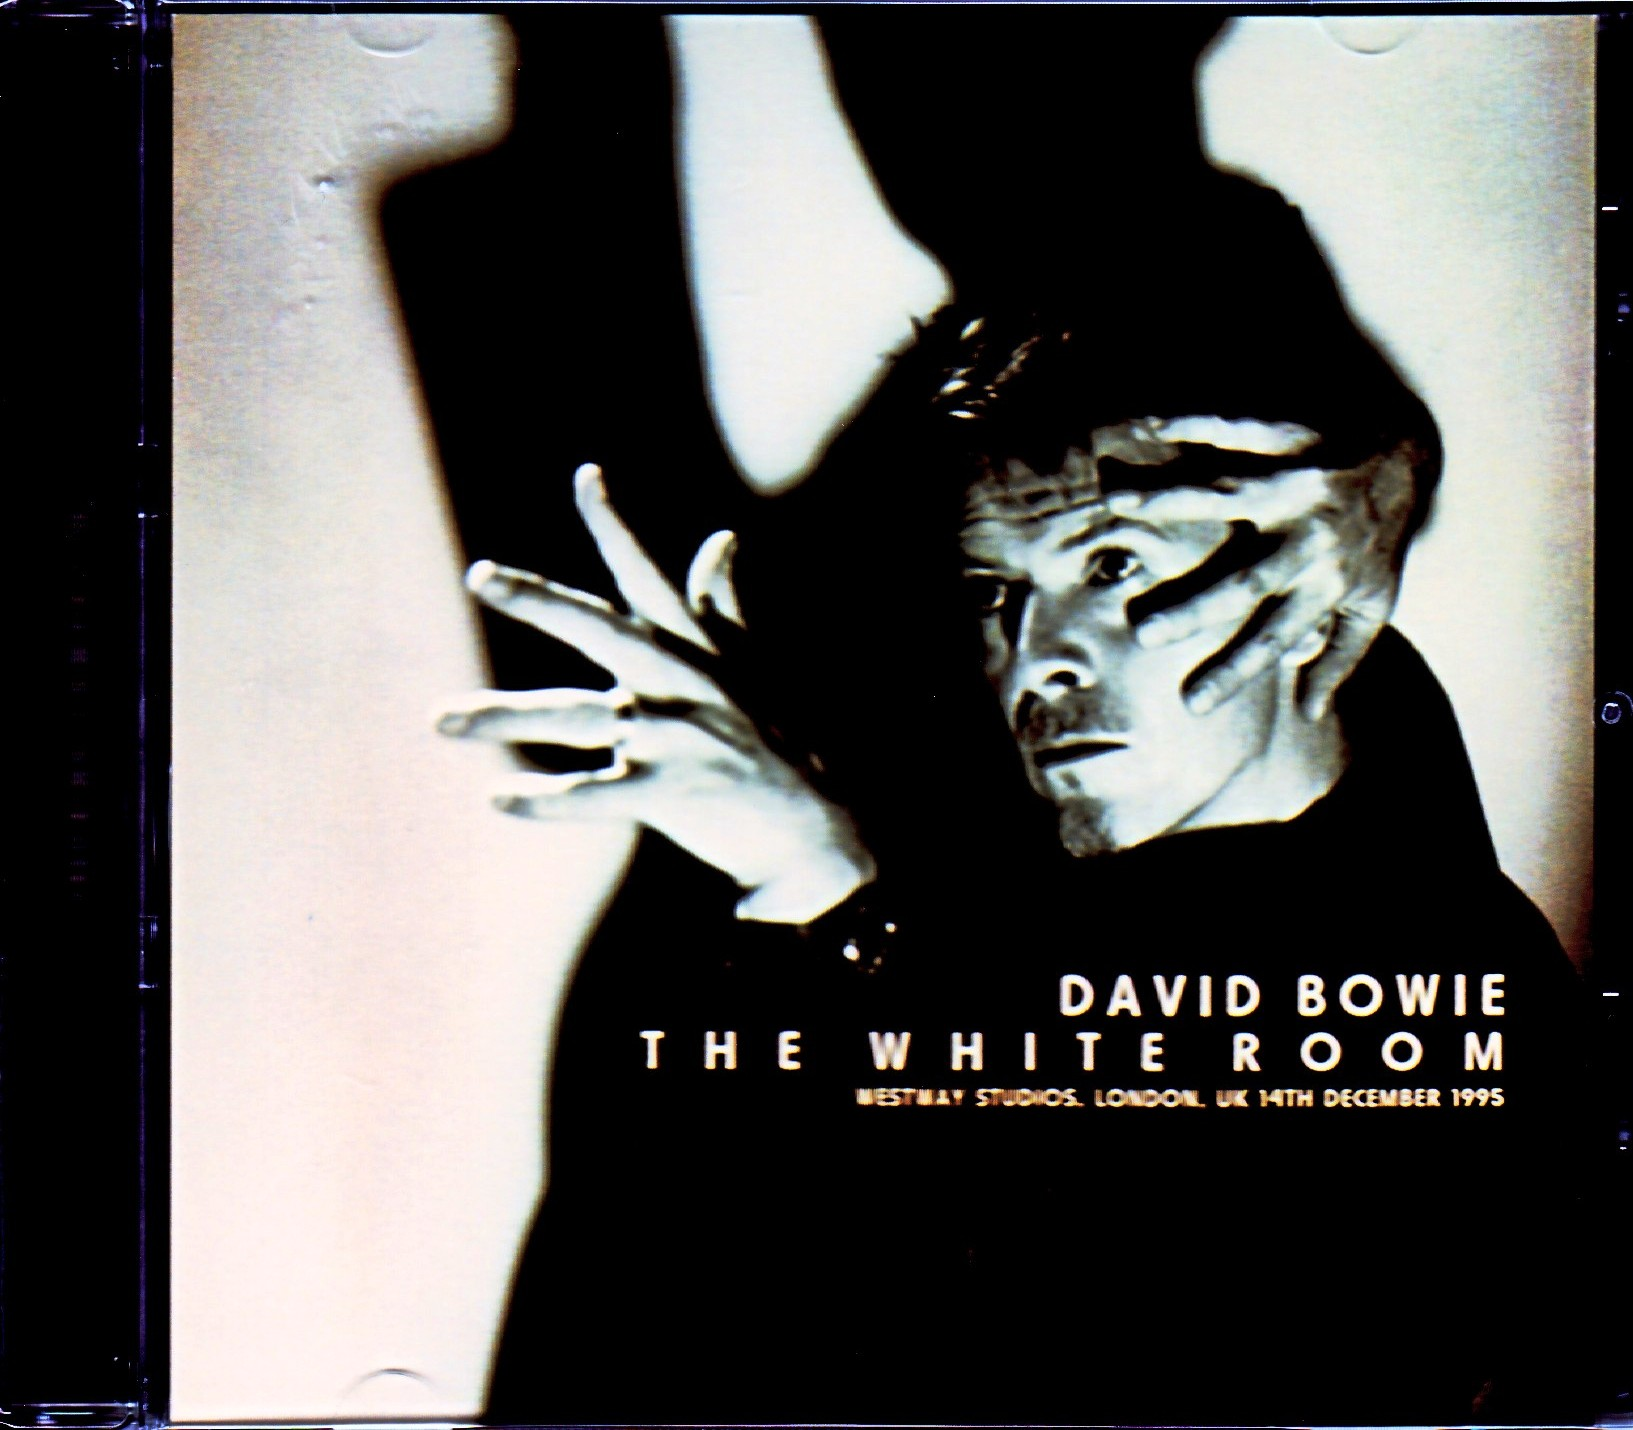 David Bowie デヴィッド・ボウイ/London,UK 1995 Complete Channel 4 Recording